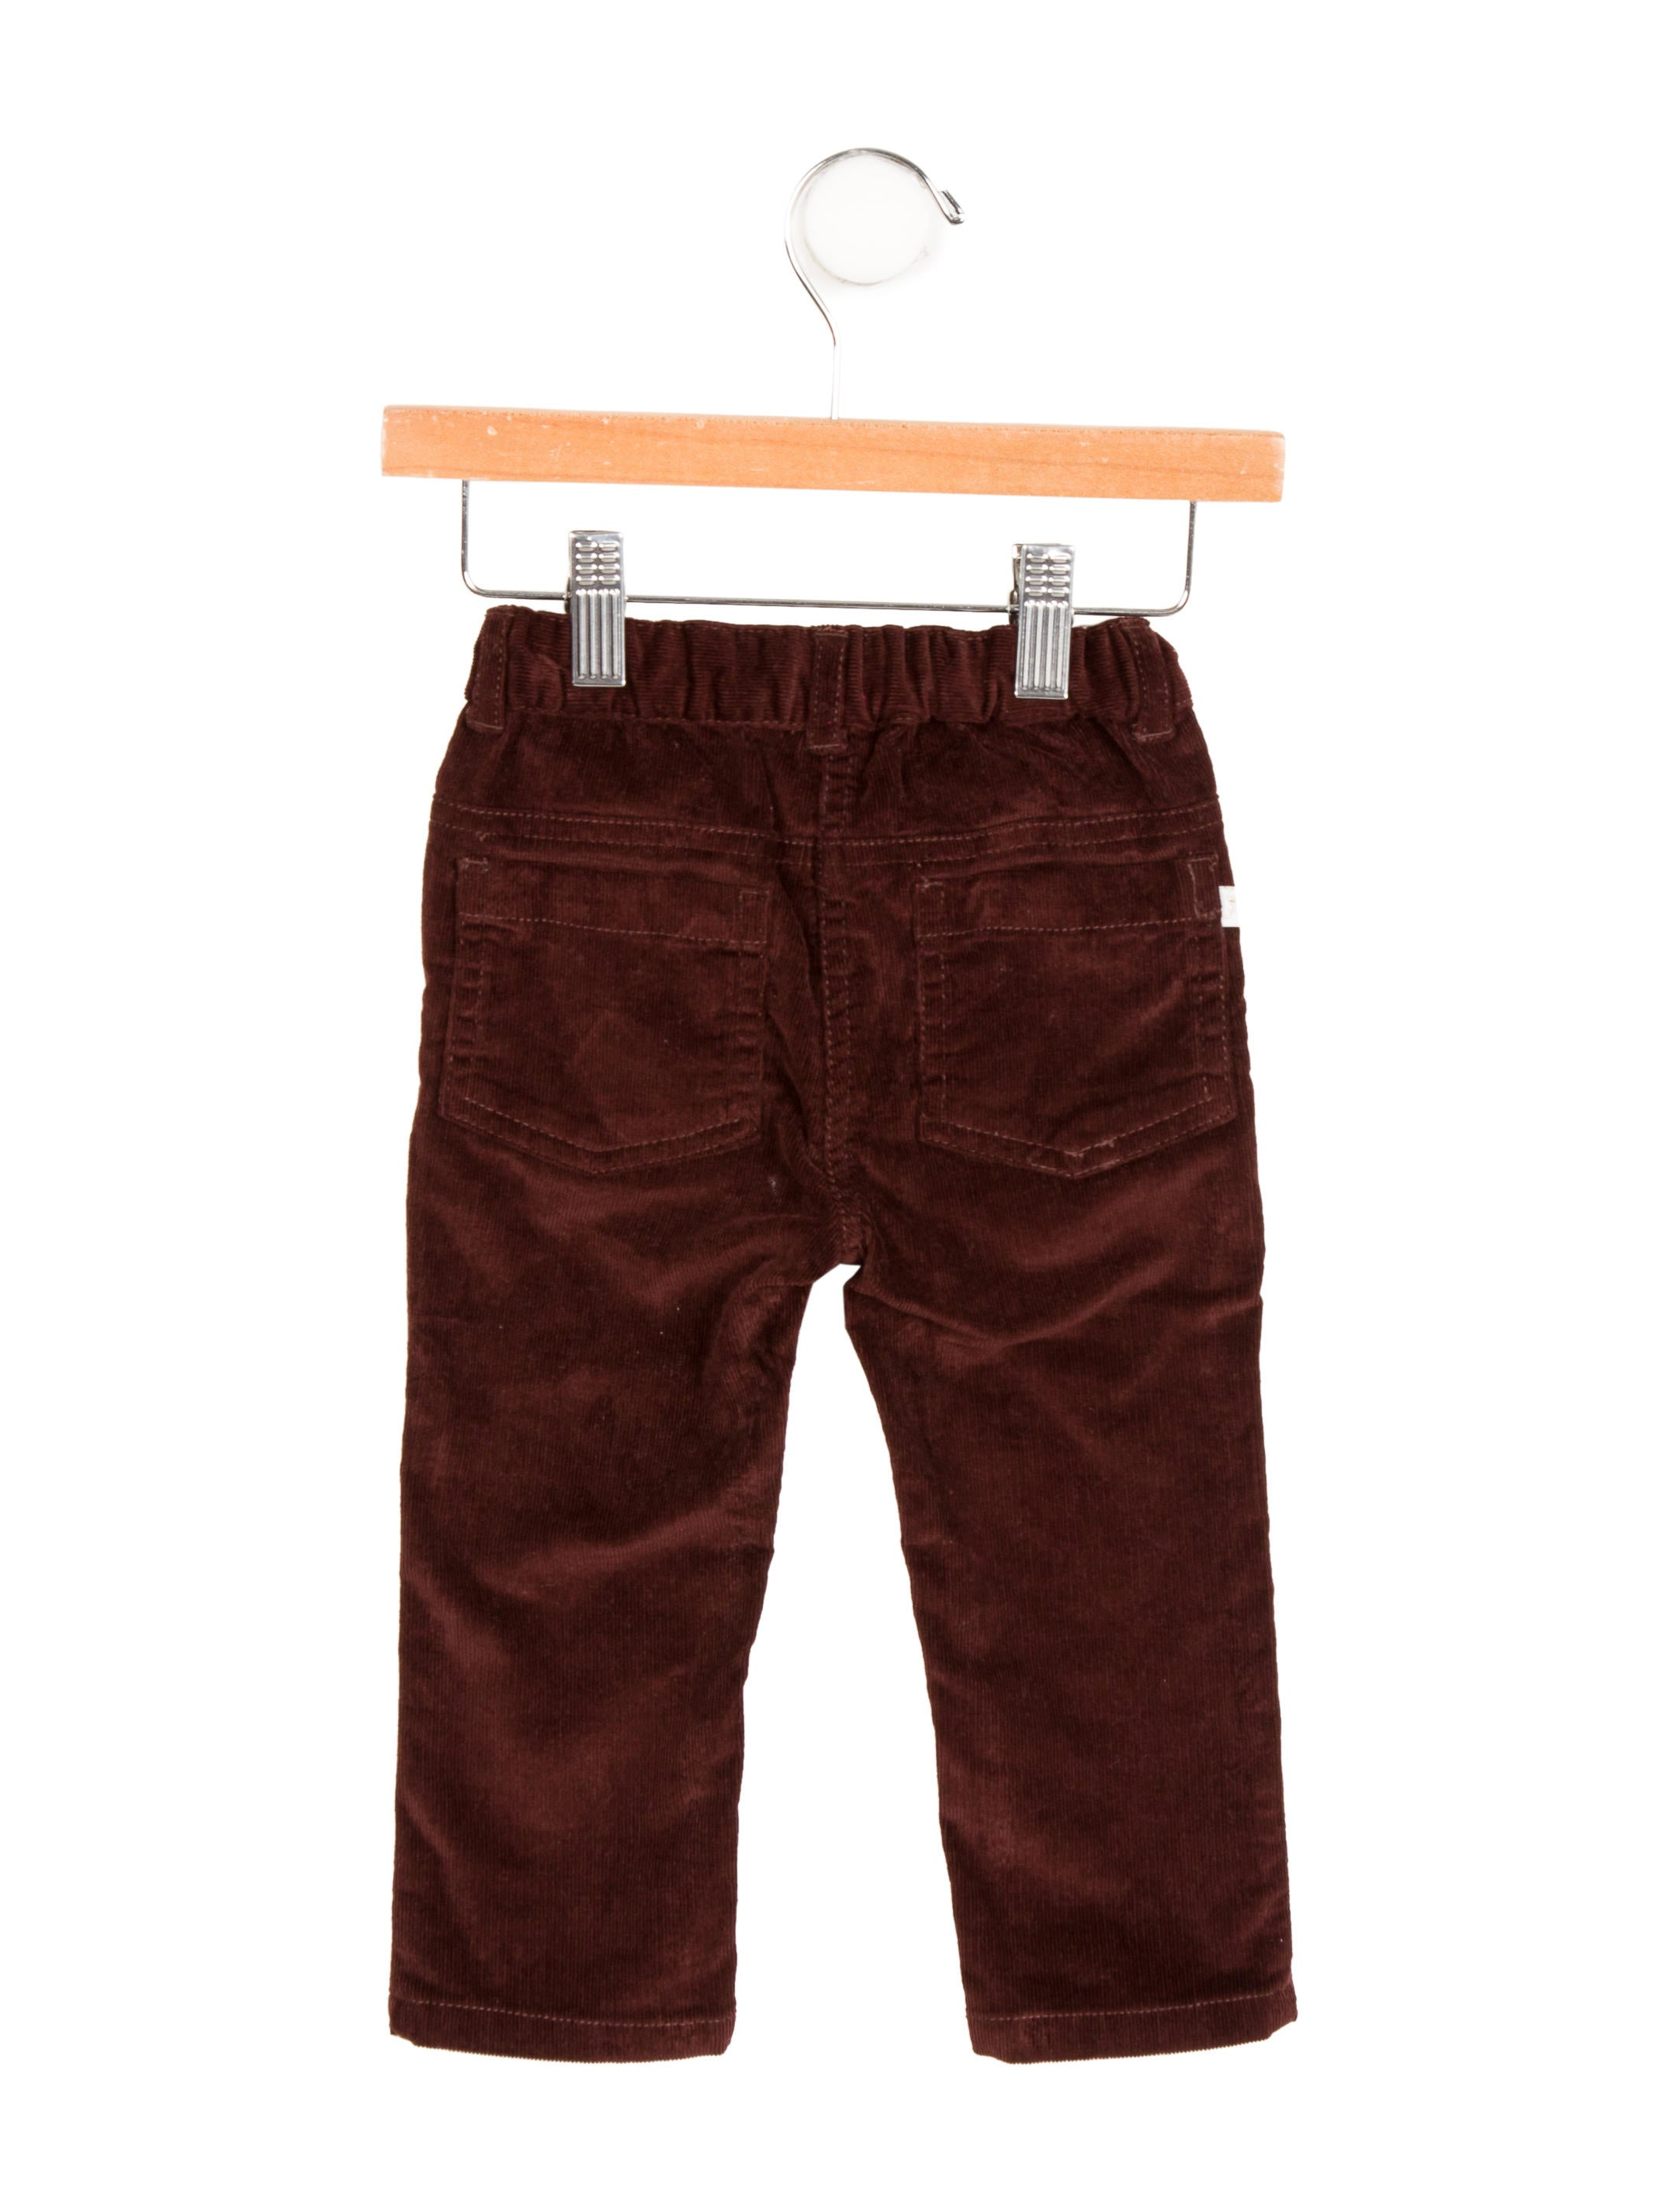 Find great deals on eBay for Girls Corduroy Pants in Girl's Pants Sizes 4 and Up. Shop with confidence.